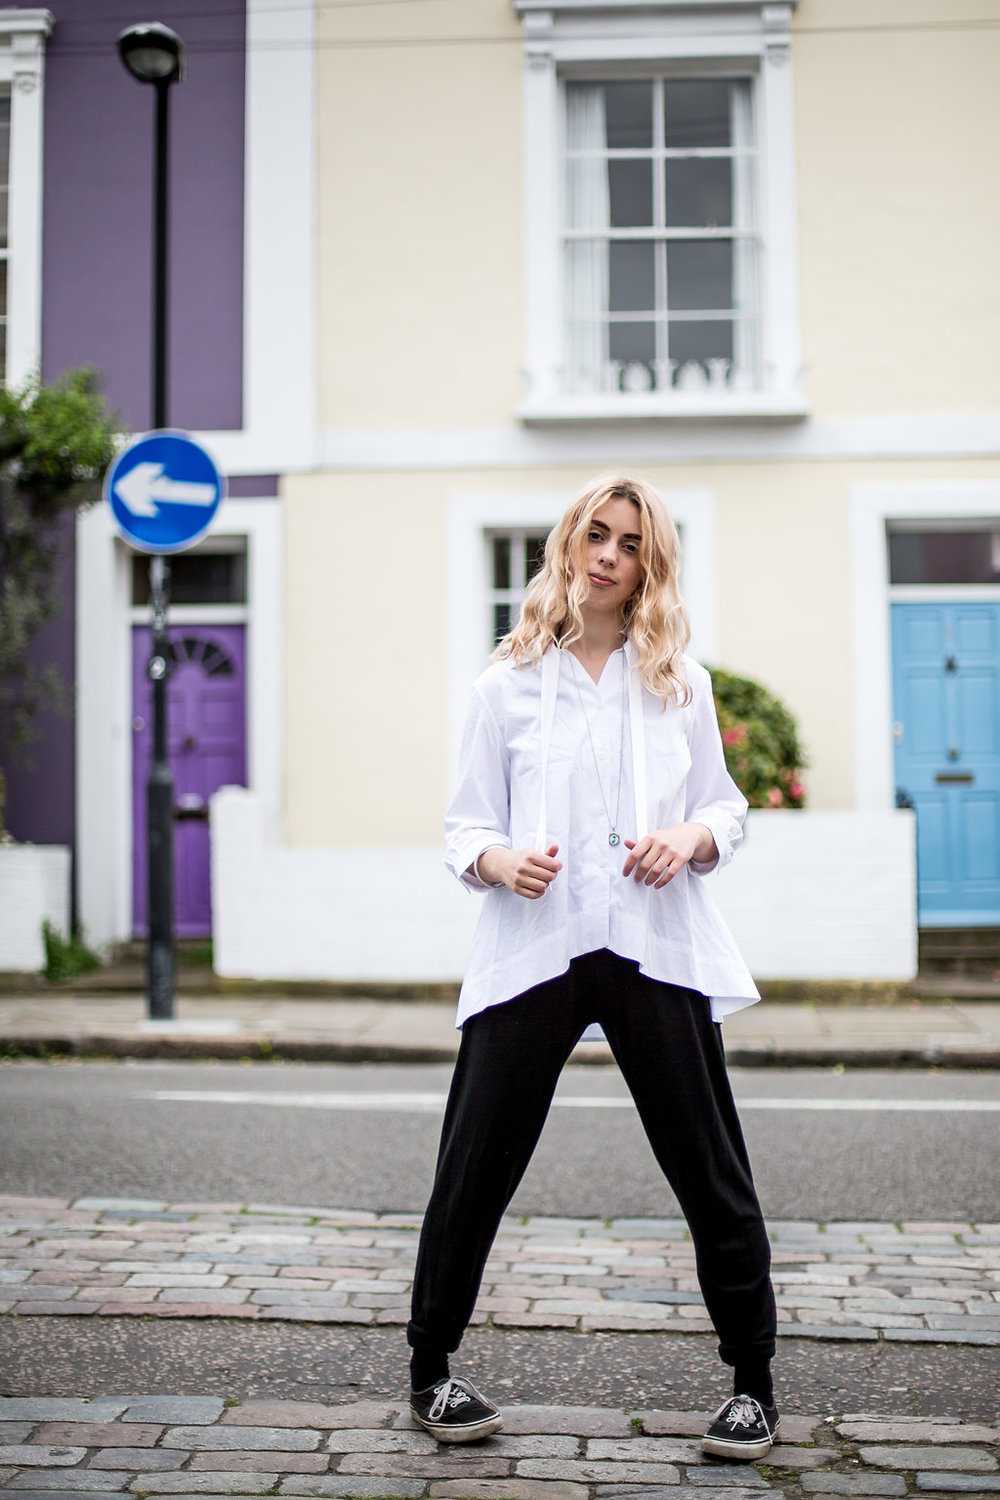 Versatile monochrome Sunday outfit  // A Week Of Vibrant & Global Outfits With Francesca Willow From Ethical Unicorn on The Good Trade